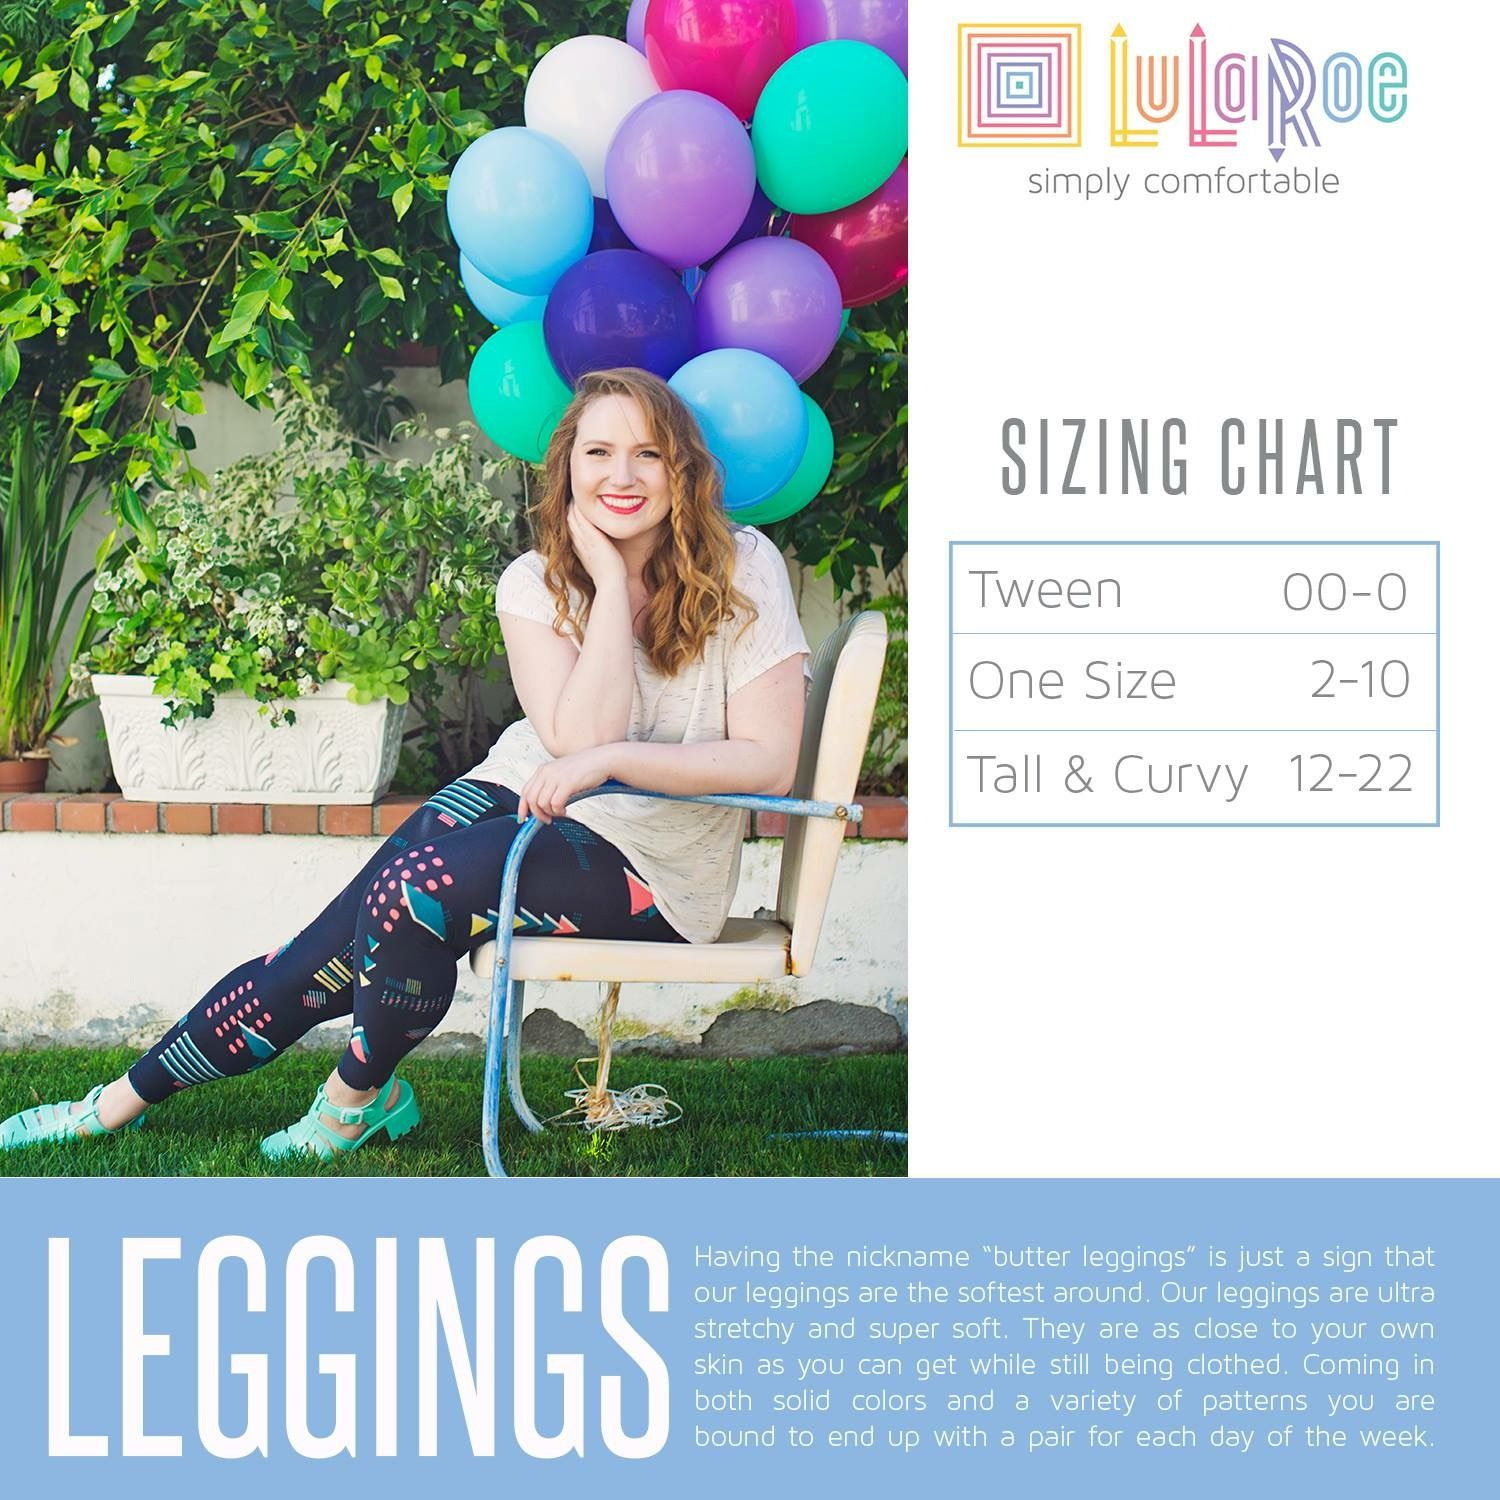 c02246a0e8bf46 LuLaRoe Leggings Sizing Chart, Size Chart for Tween, One Size and Tall and  Curvy